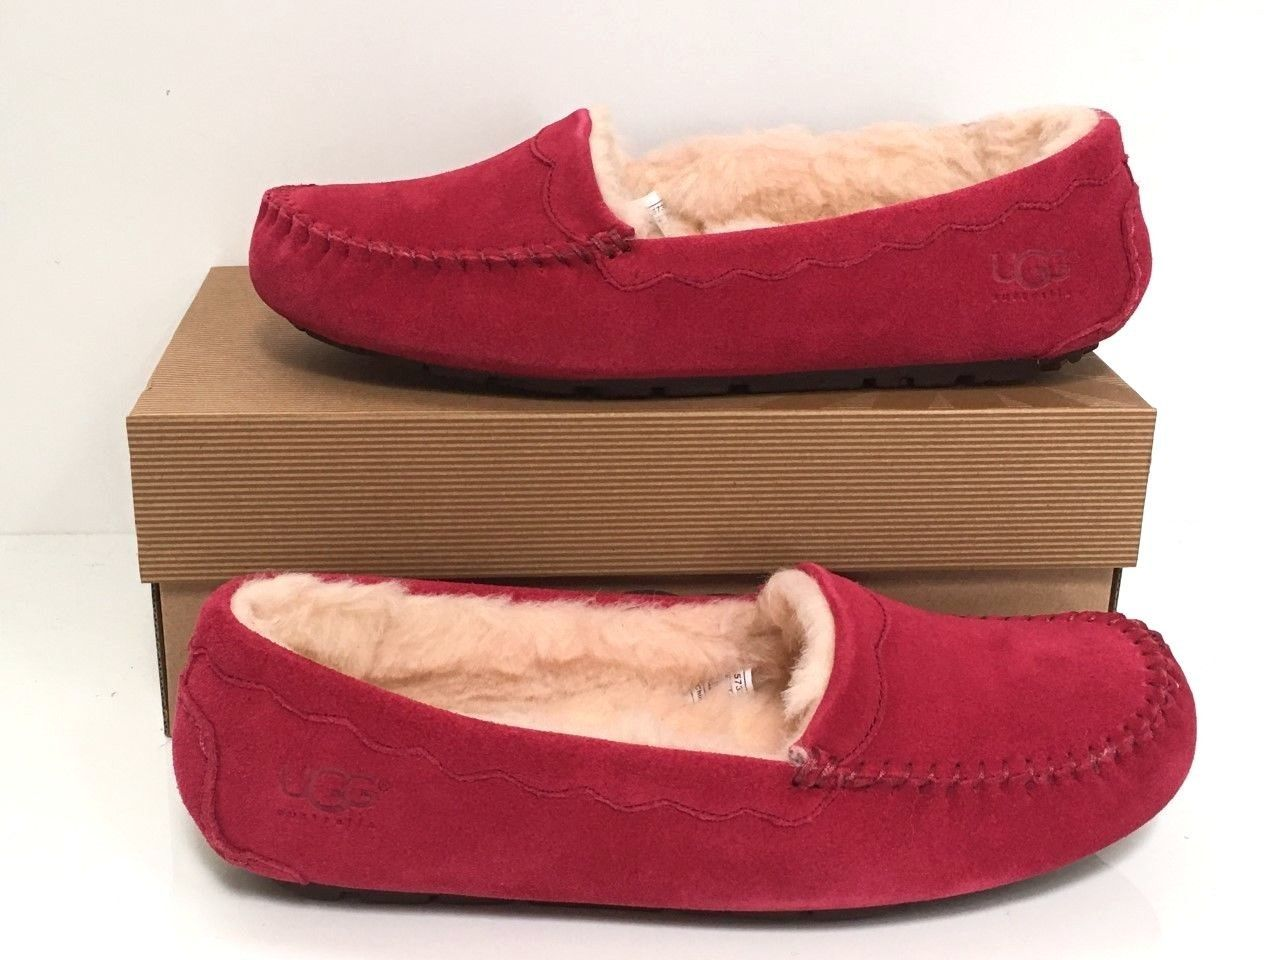 Ugg Australia 57322 Scalloped Suede Sheepskin Slipper Moccasin 7 Red